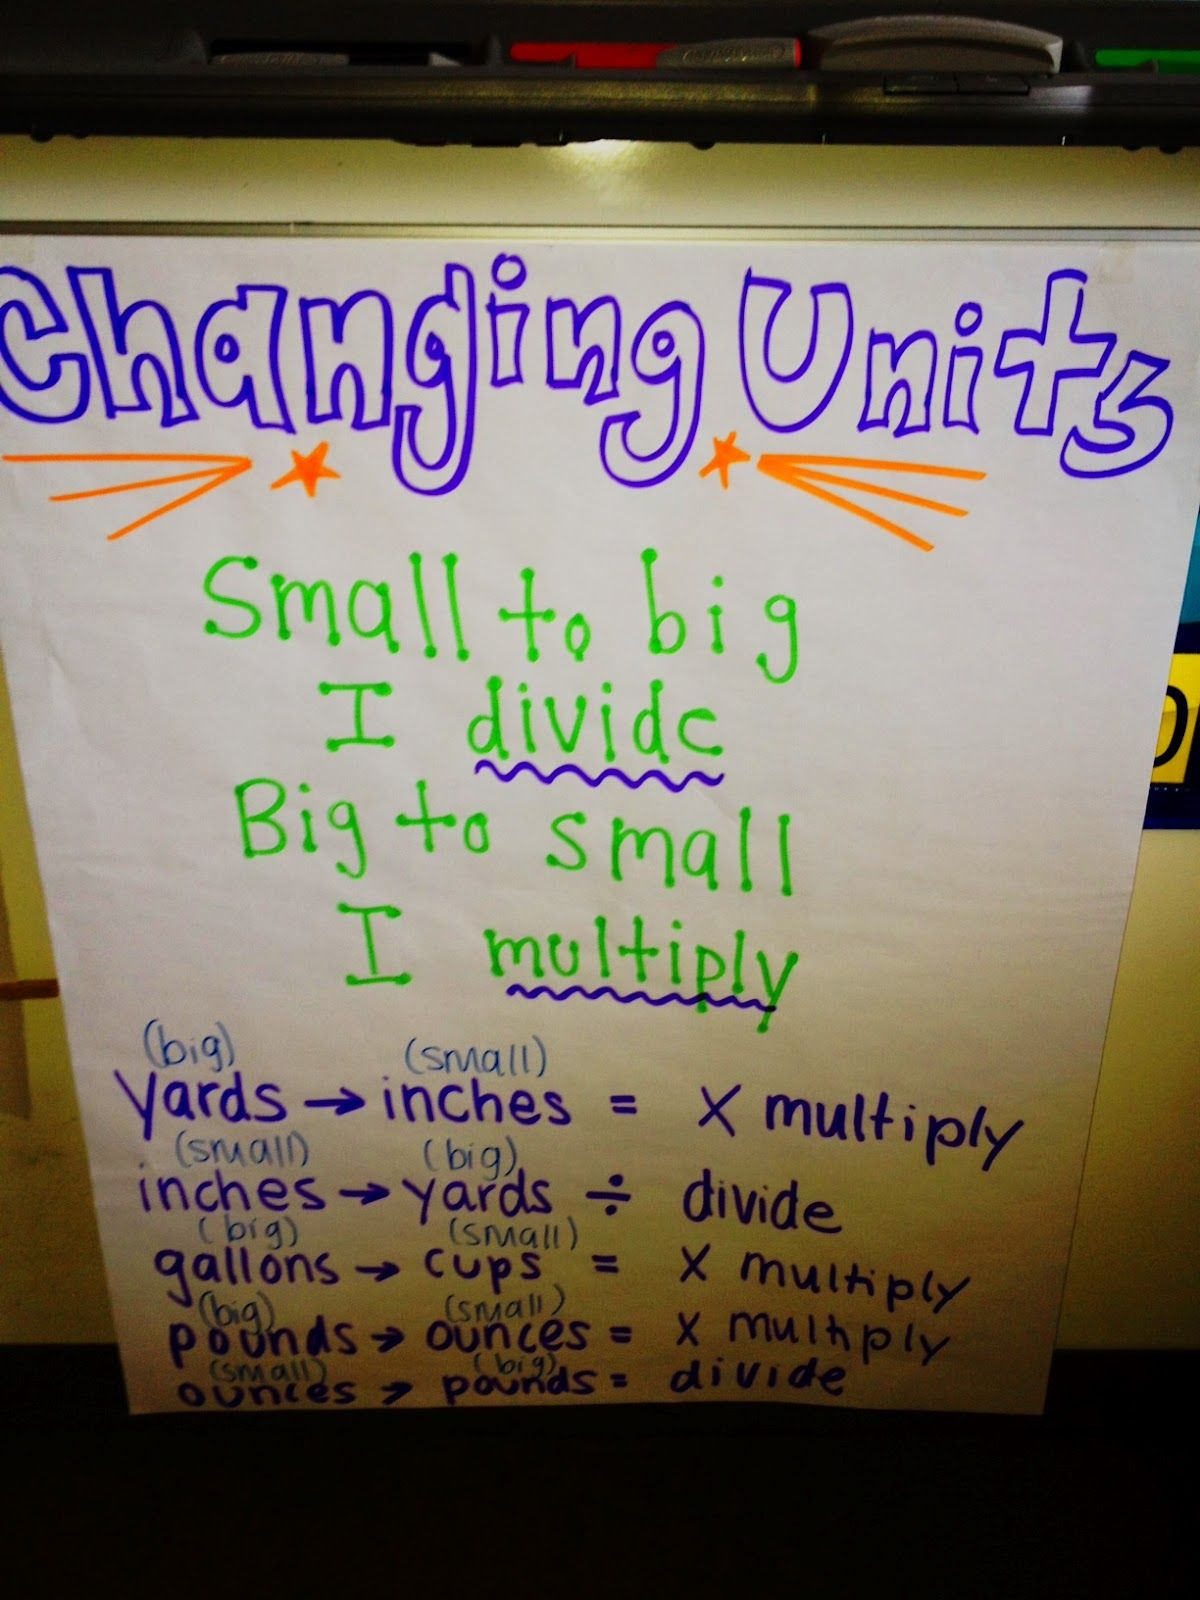 Converting Measurement Units Anchor Chart